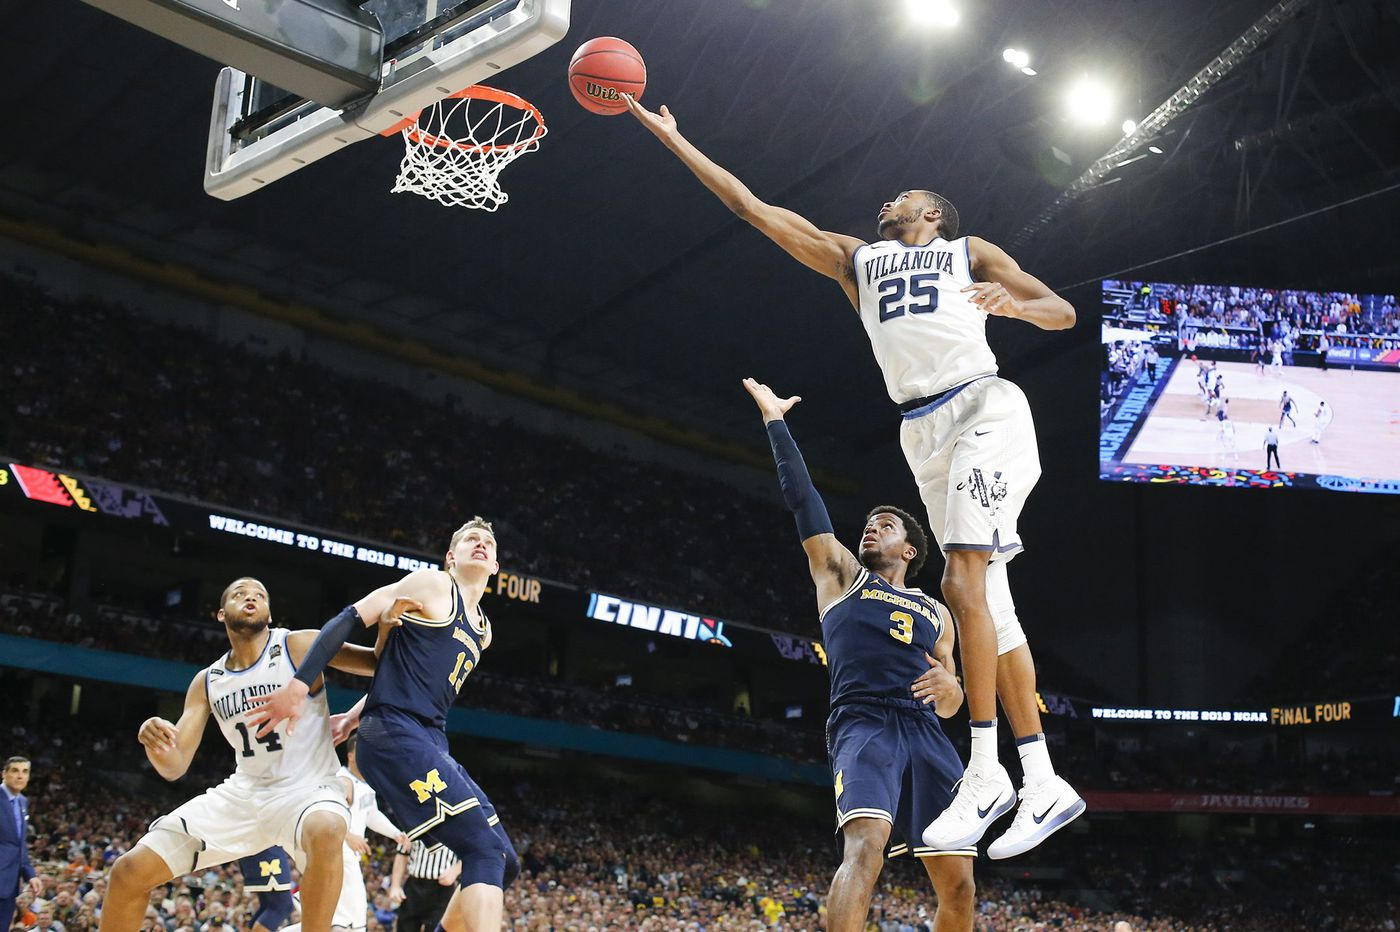 Villanova's Mikal Bridges to work out for Sixers Tuesday as NBA draft draws closer